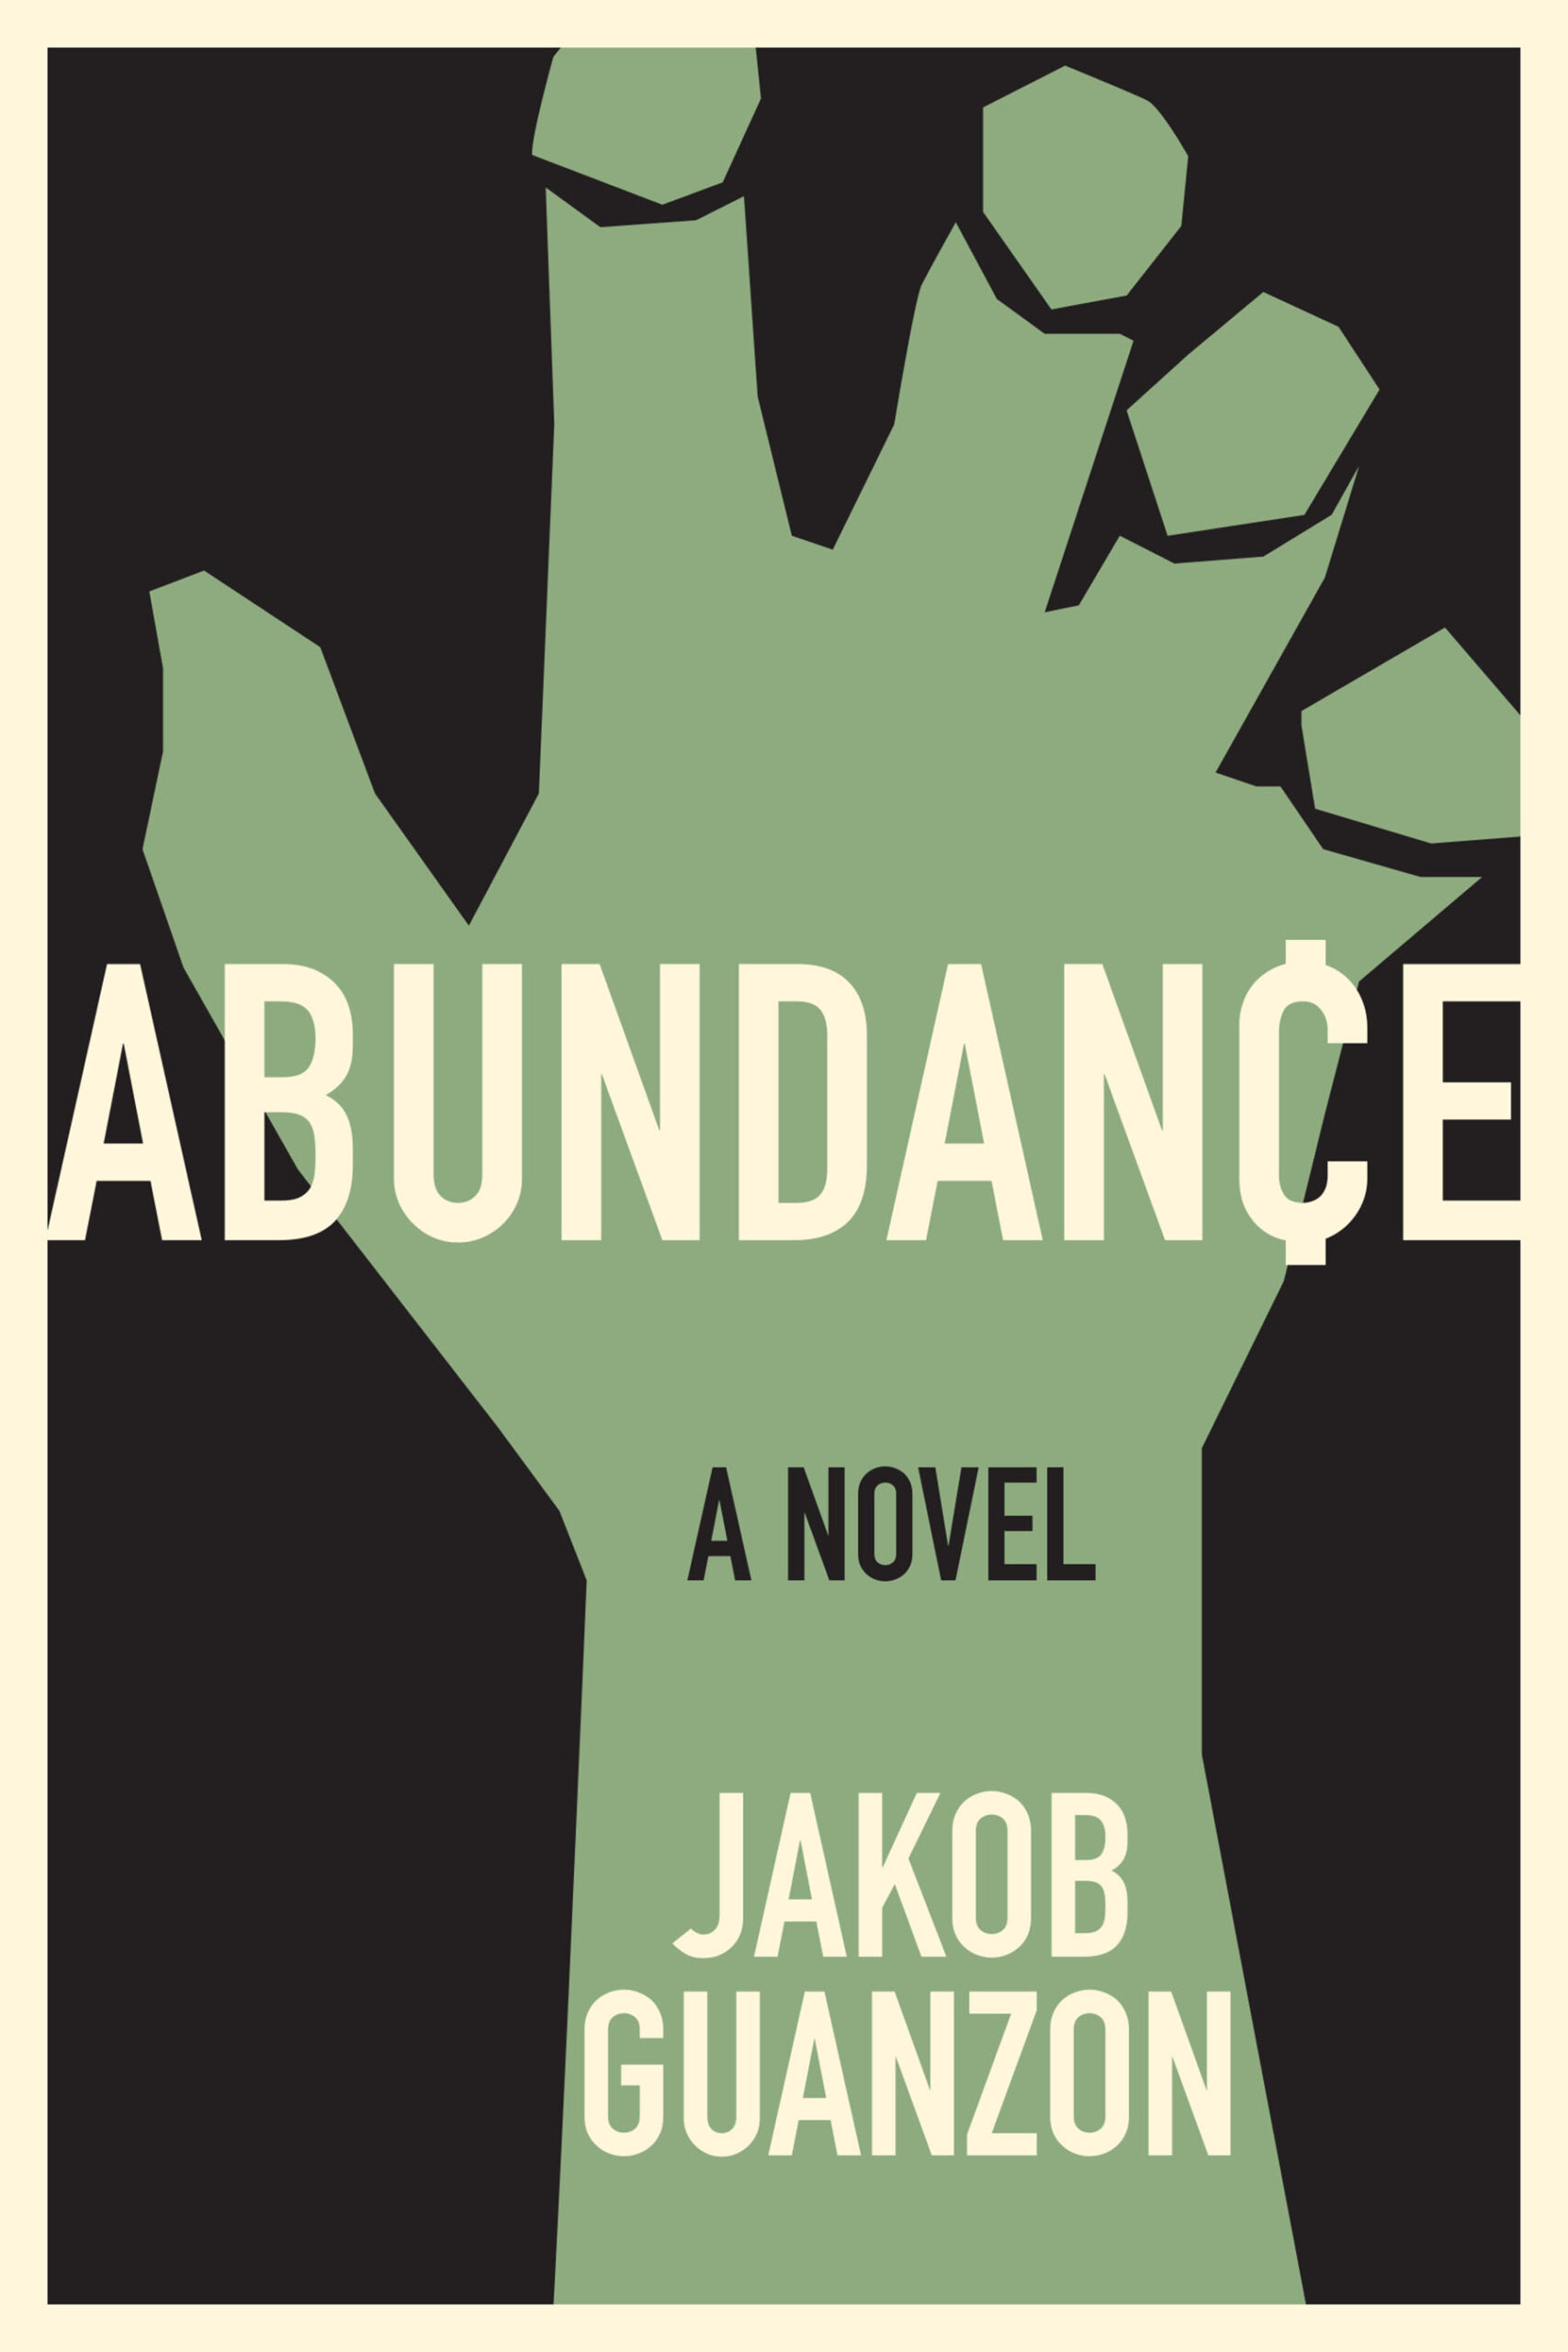 Virtual Book Launch: Abundance by Jakob Guanzon in conversation with Mina Hamedi